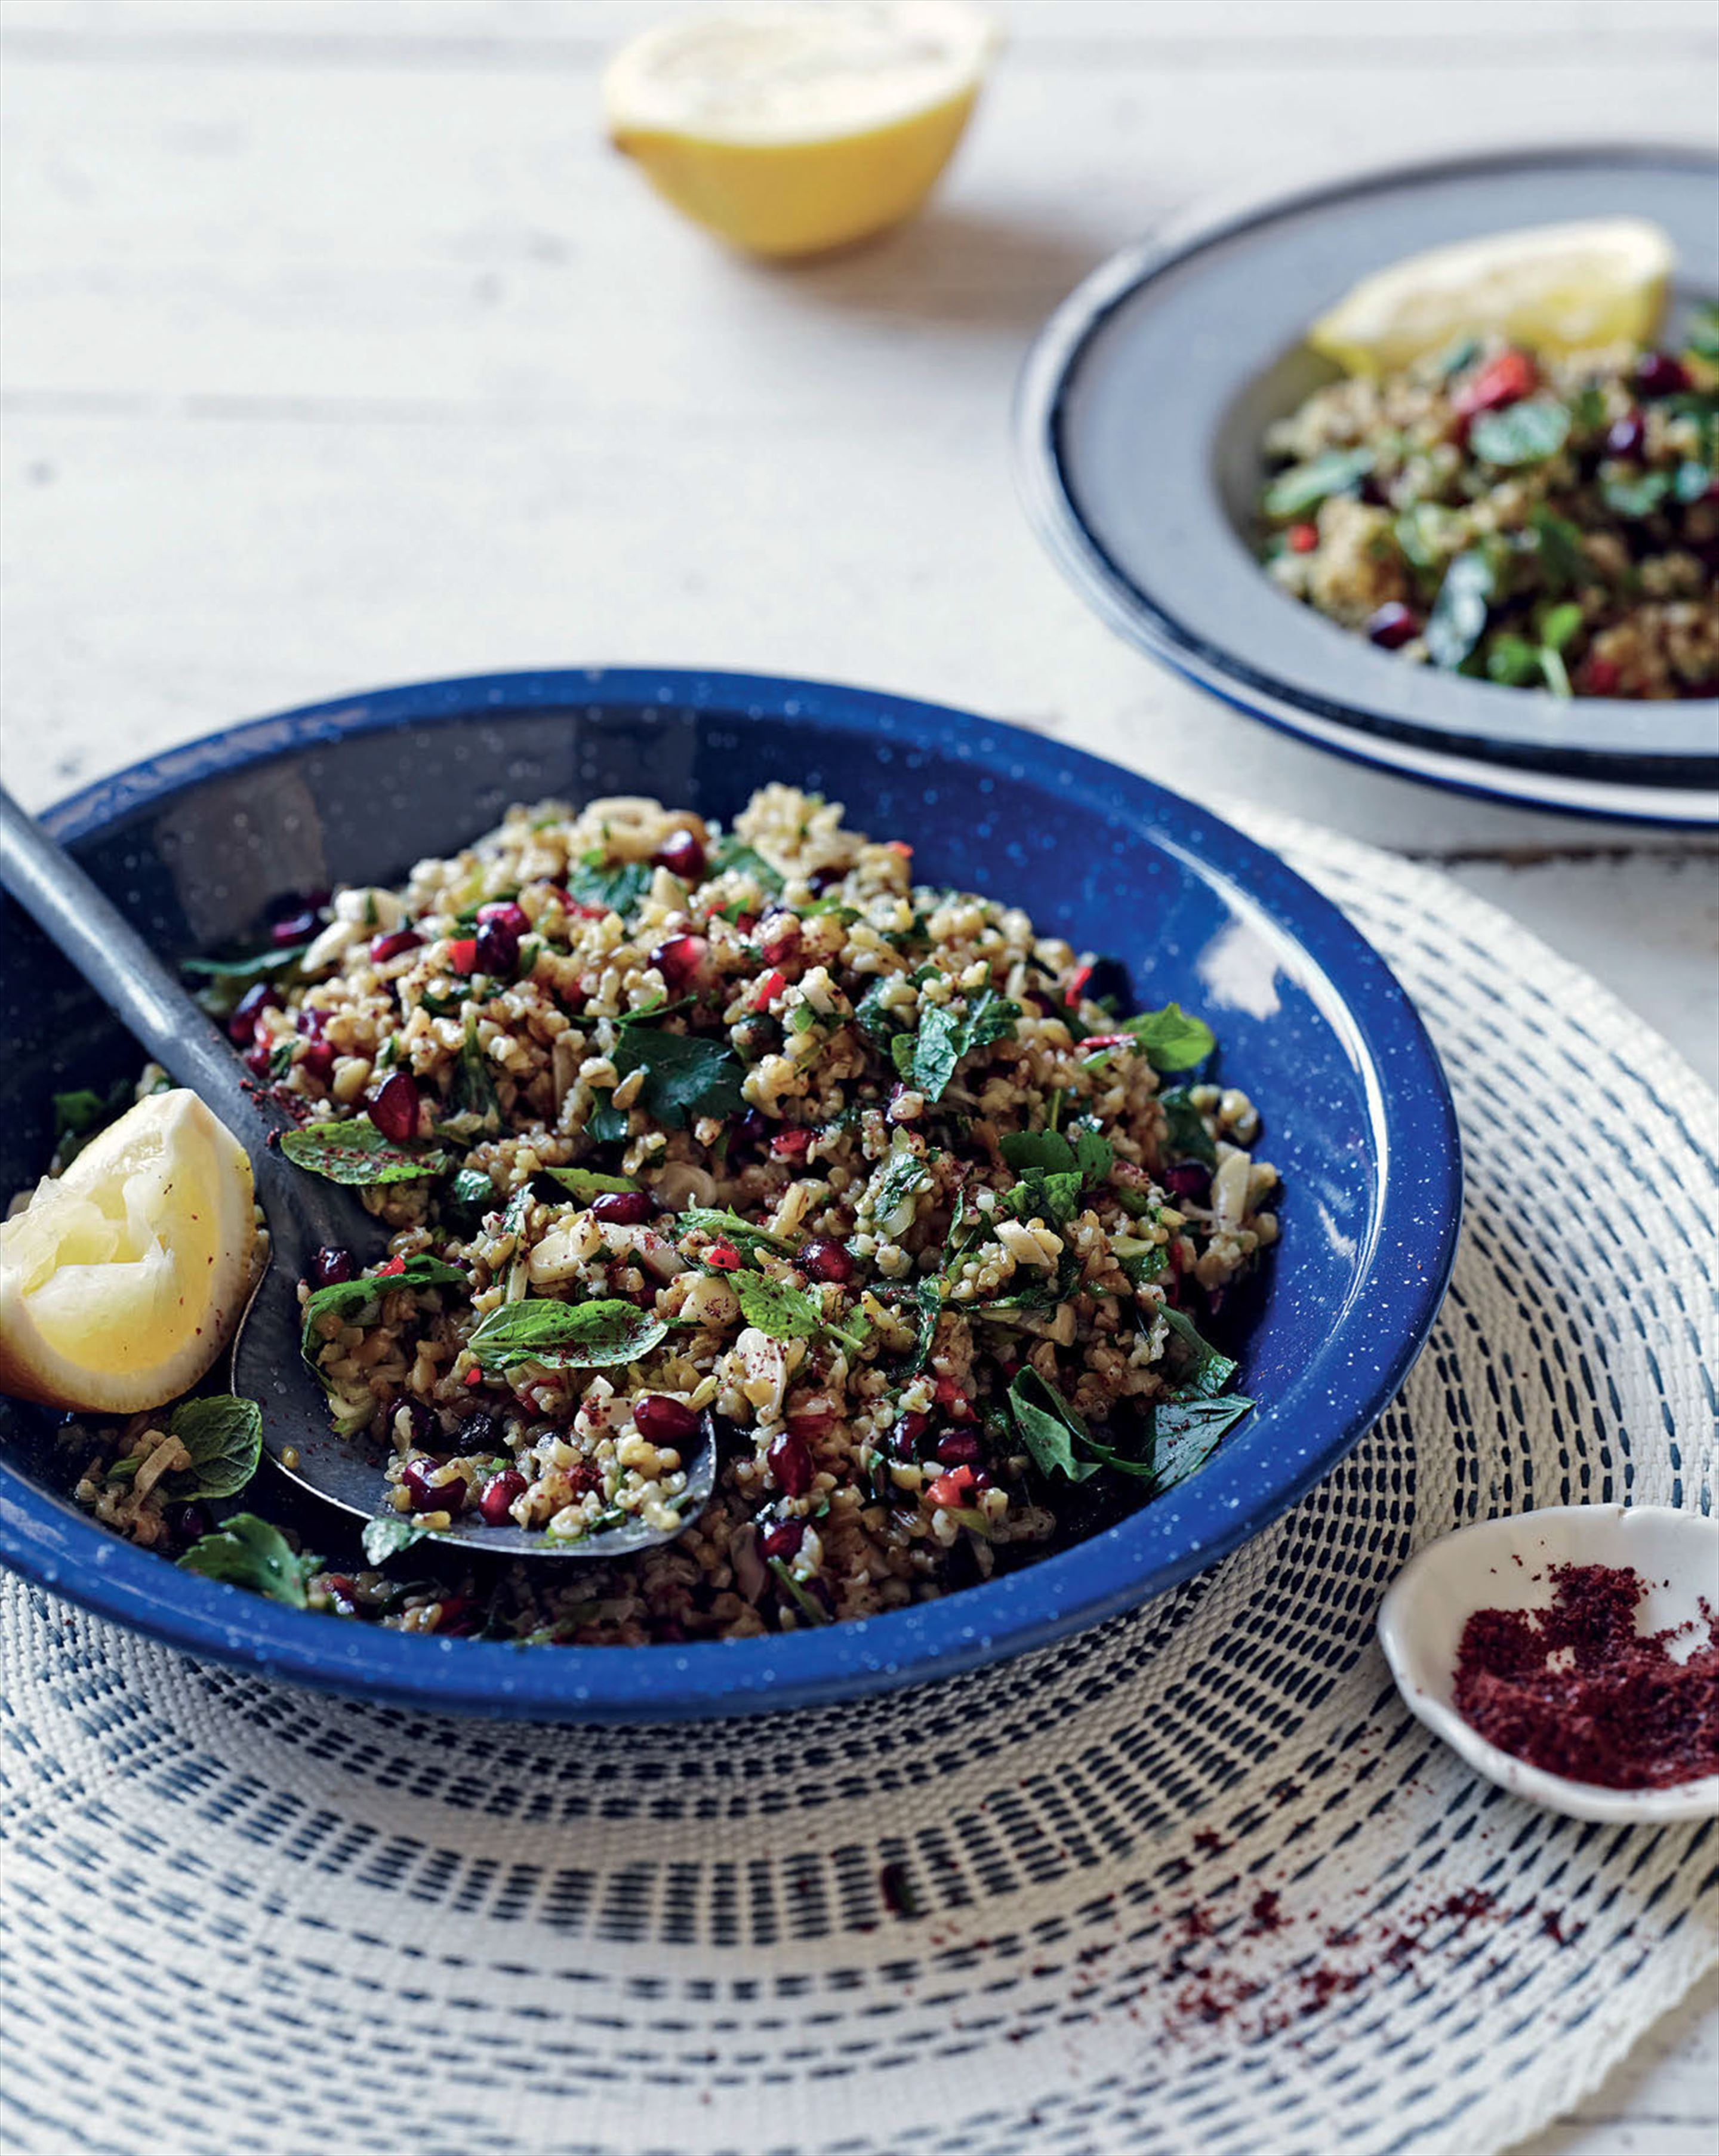 Freekeh salad with almonds and pomegranate